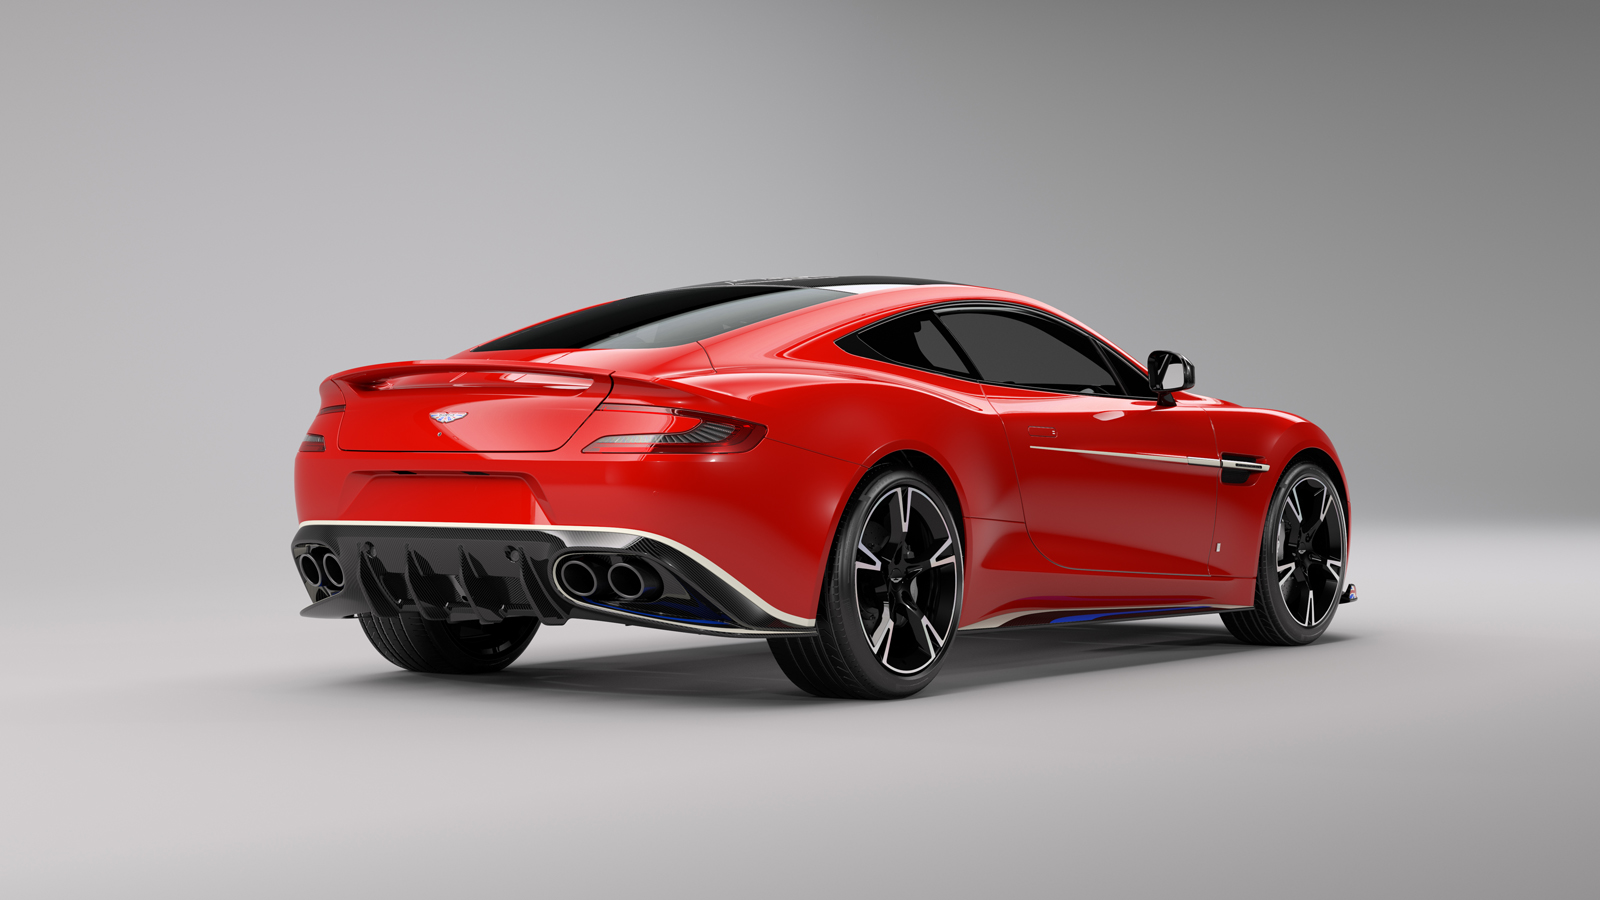 Aston Martin Vanquish S Red Arrows Edition Salutes The Raf